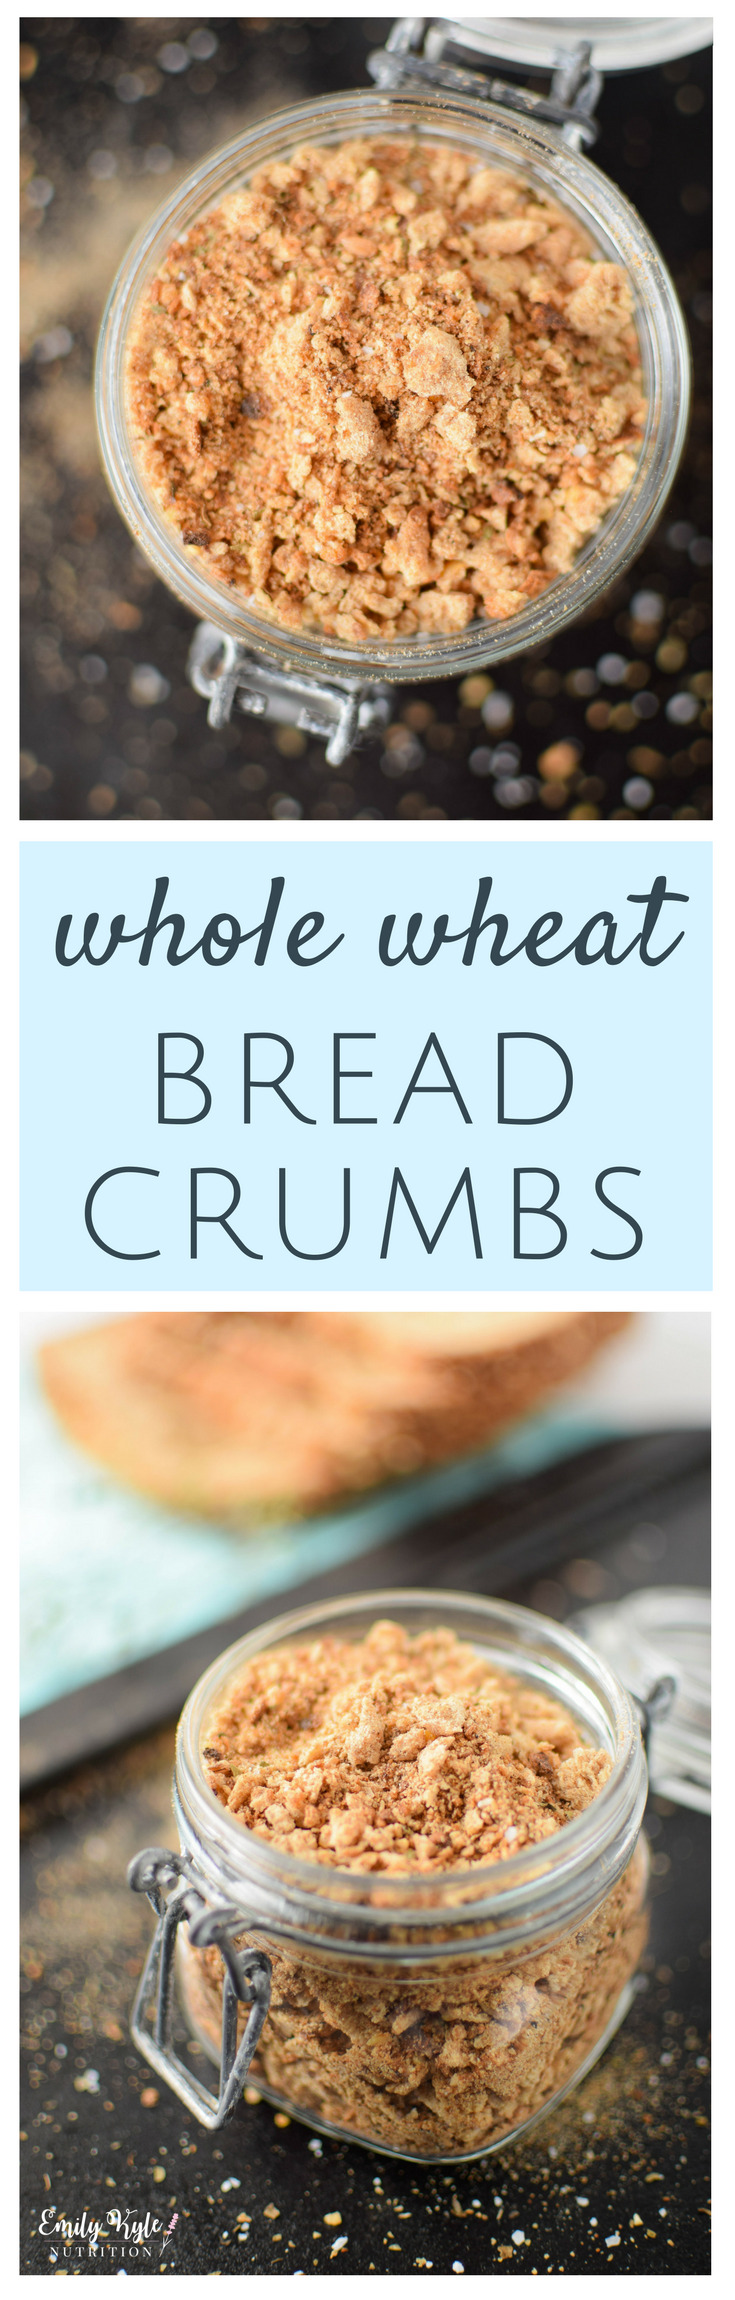 Swap out your pre-made breadcrumbs made from refined white bread or flour for a more nutritious and delicious alternative. Make these Seasoned Homemade Whole Wheat Breadcrumb and enjoy all of the nutritional benefits along with great taste and reduced food waste! via @EmKyleNutrition